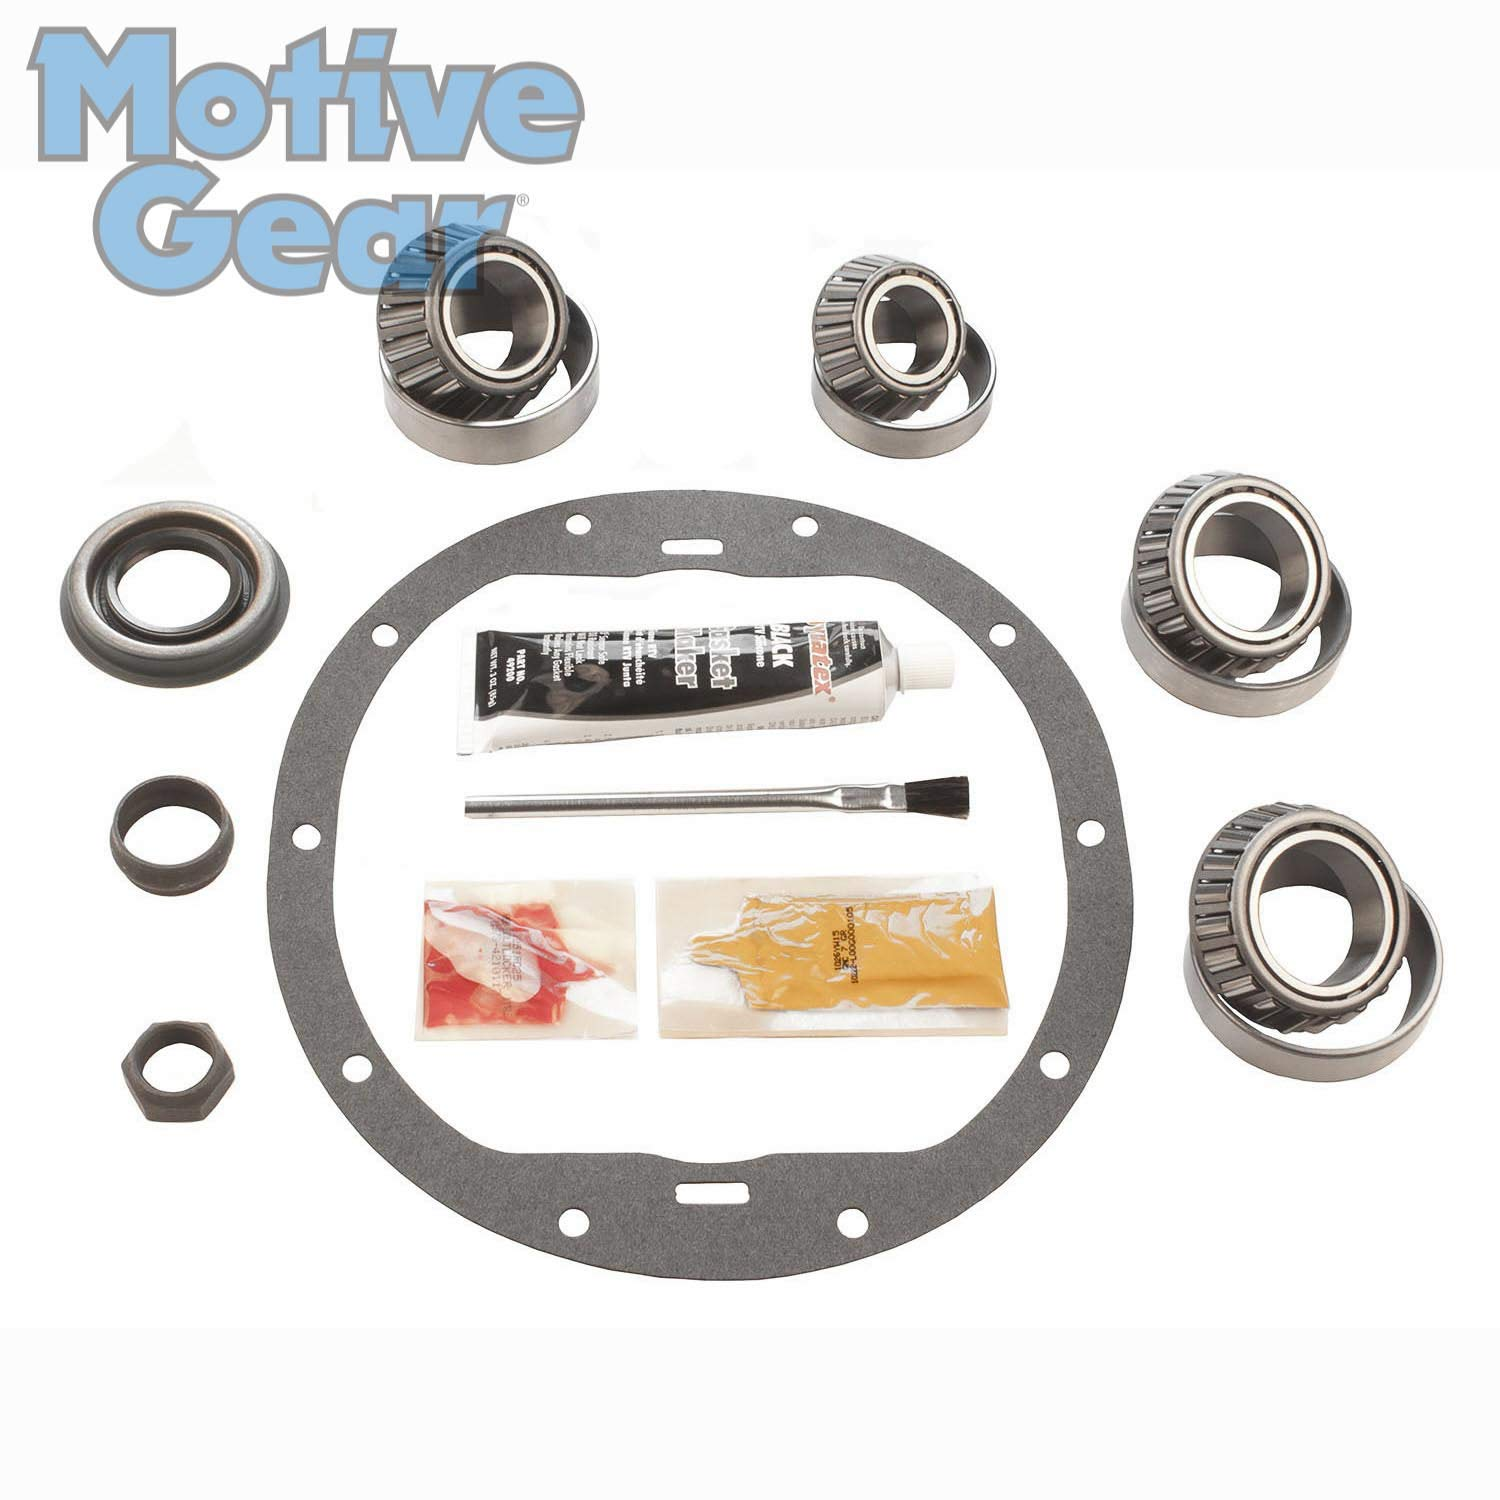 OE Replacement Headlight FORD CROWN VICTORIA 1998-2011 Multiple Manufacturers FO2502200C Partslink FO2502200